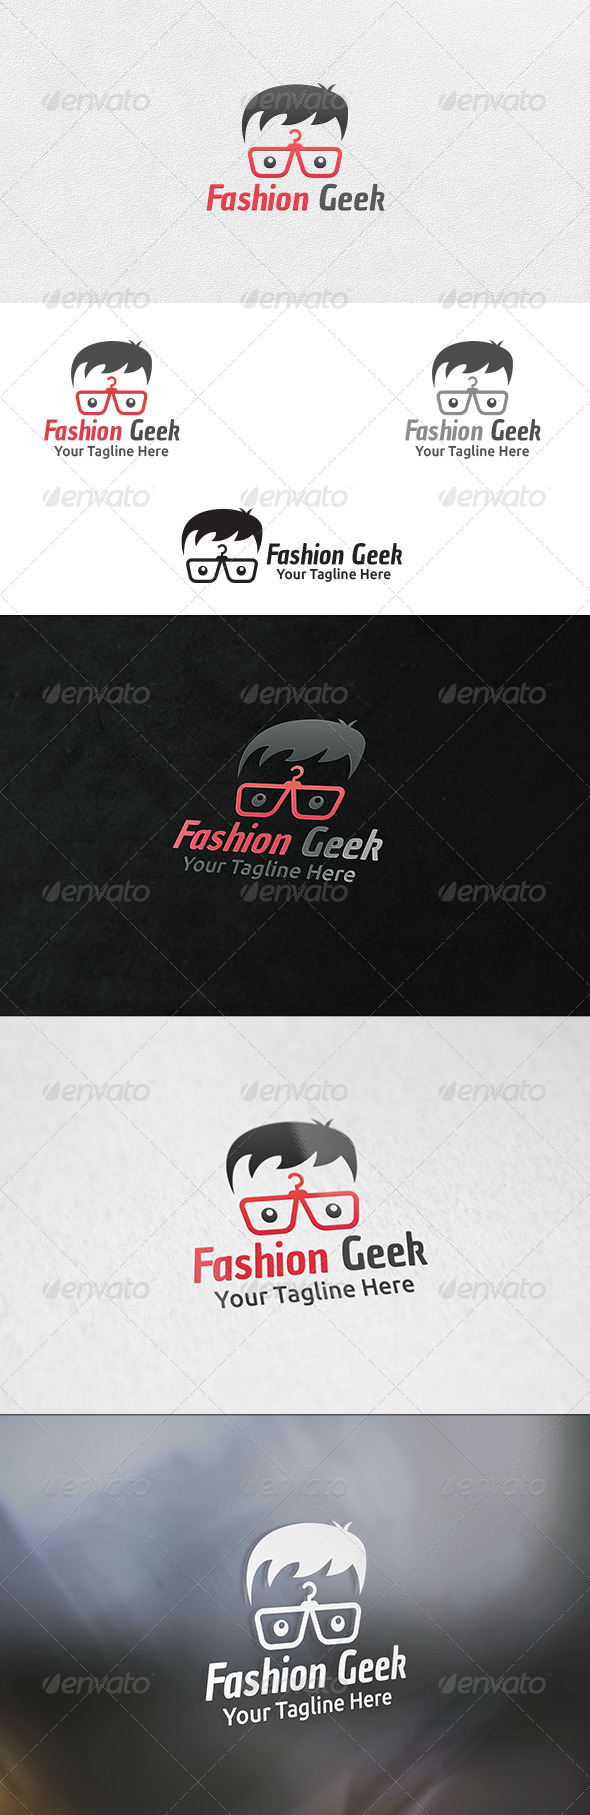 GraphicRiver Fashion Geek Logo Template 6517603